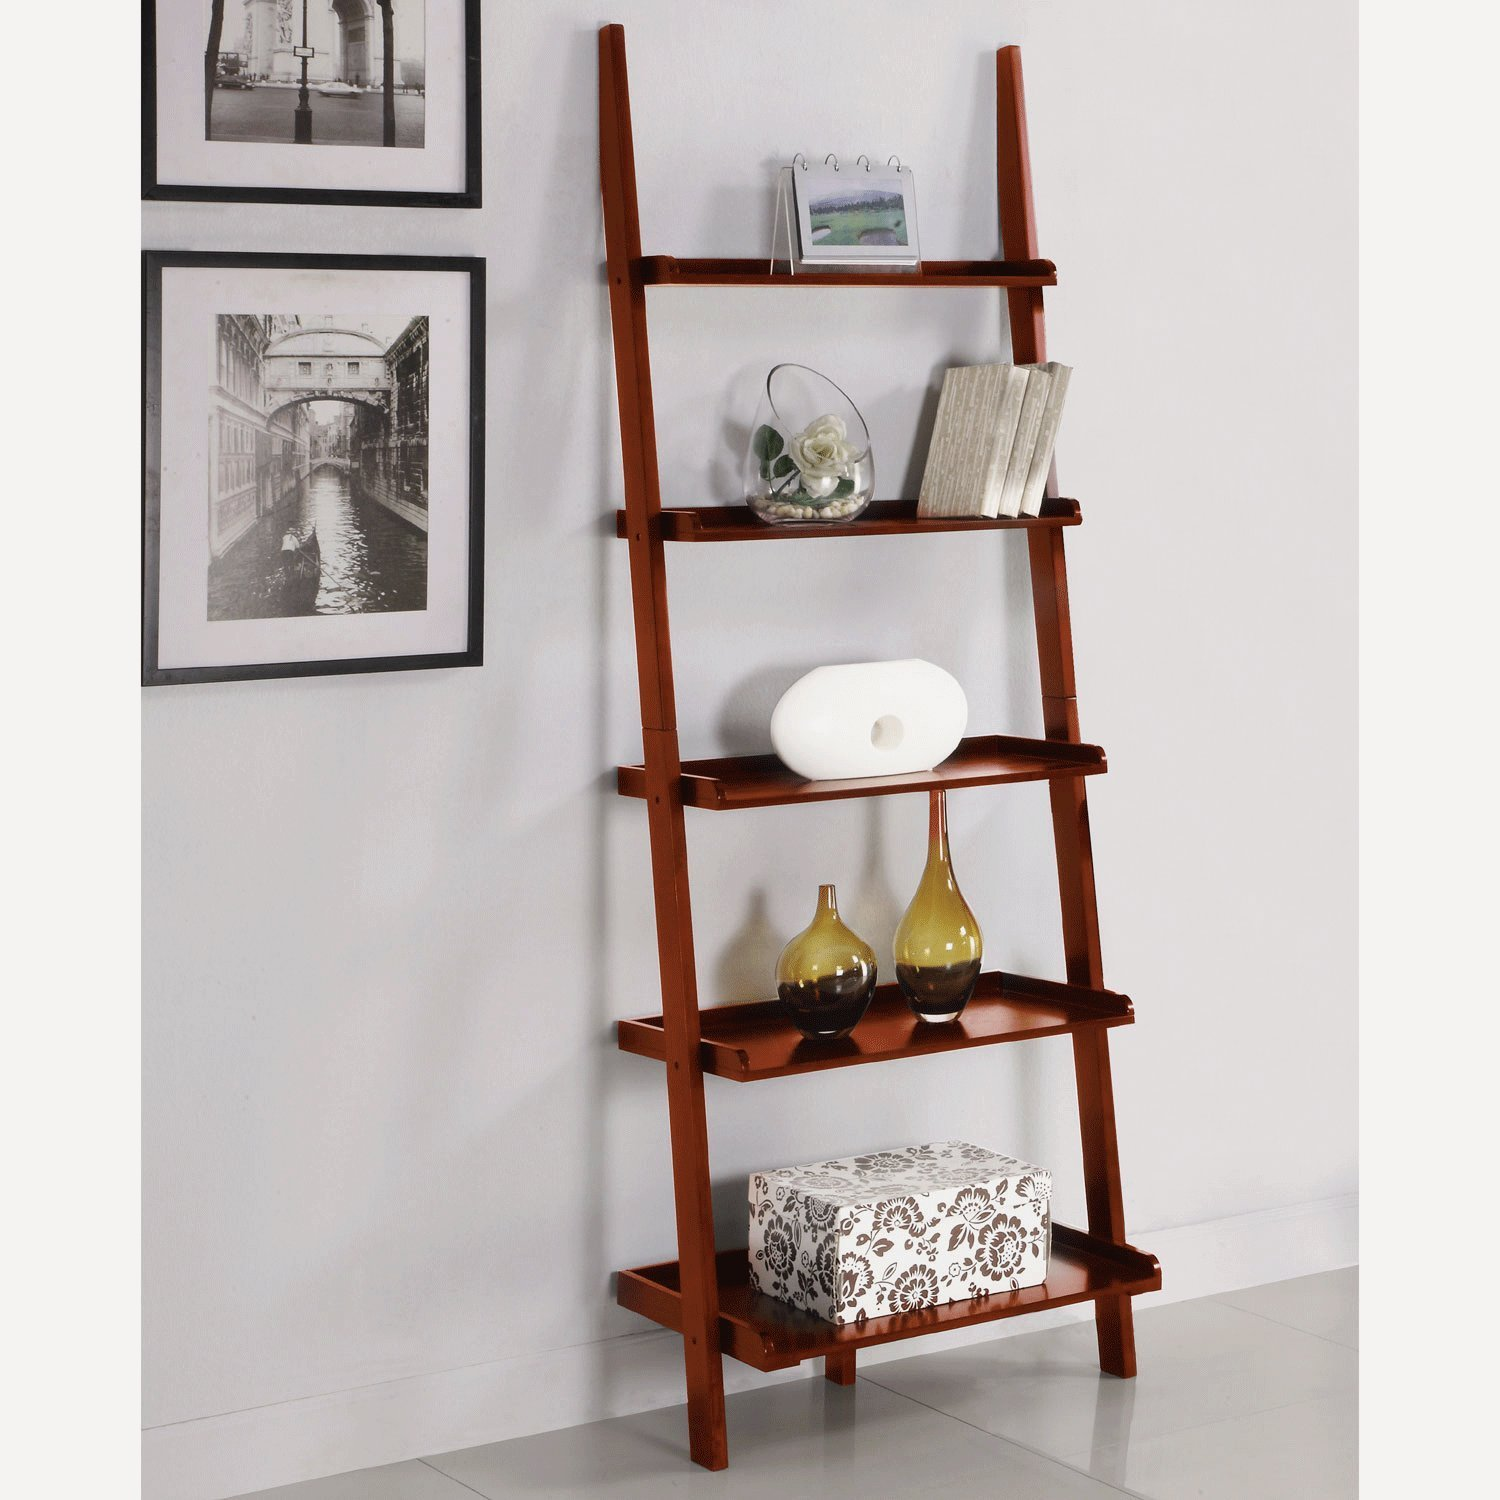 Super Top 22 Ladder Bookcase And Bookshelf Collection For Your Interiors Largest Home Design Picture Inspirations Pitcheantrous